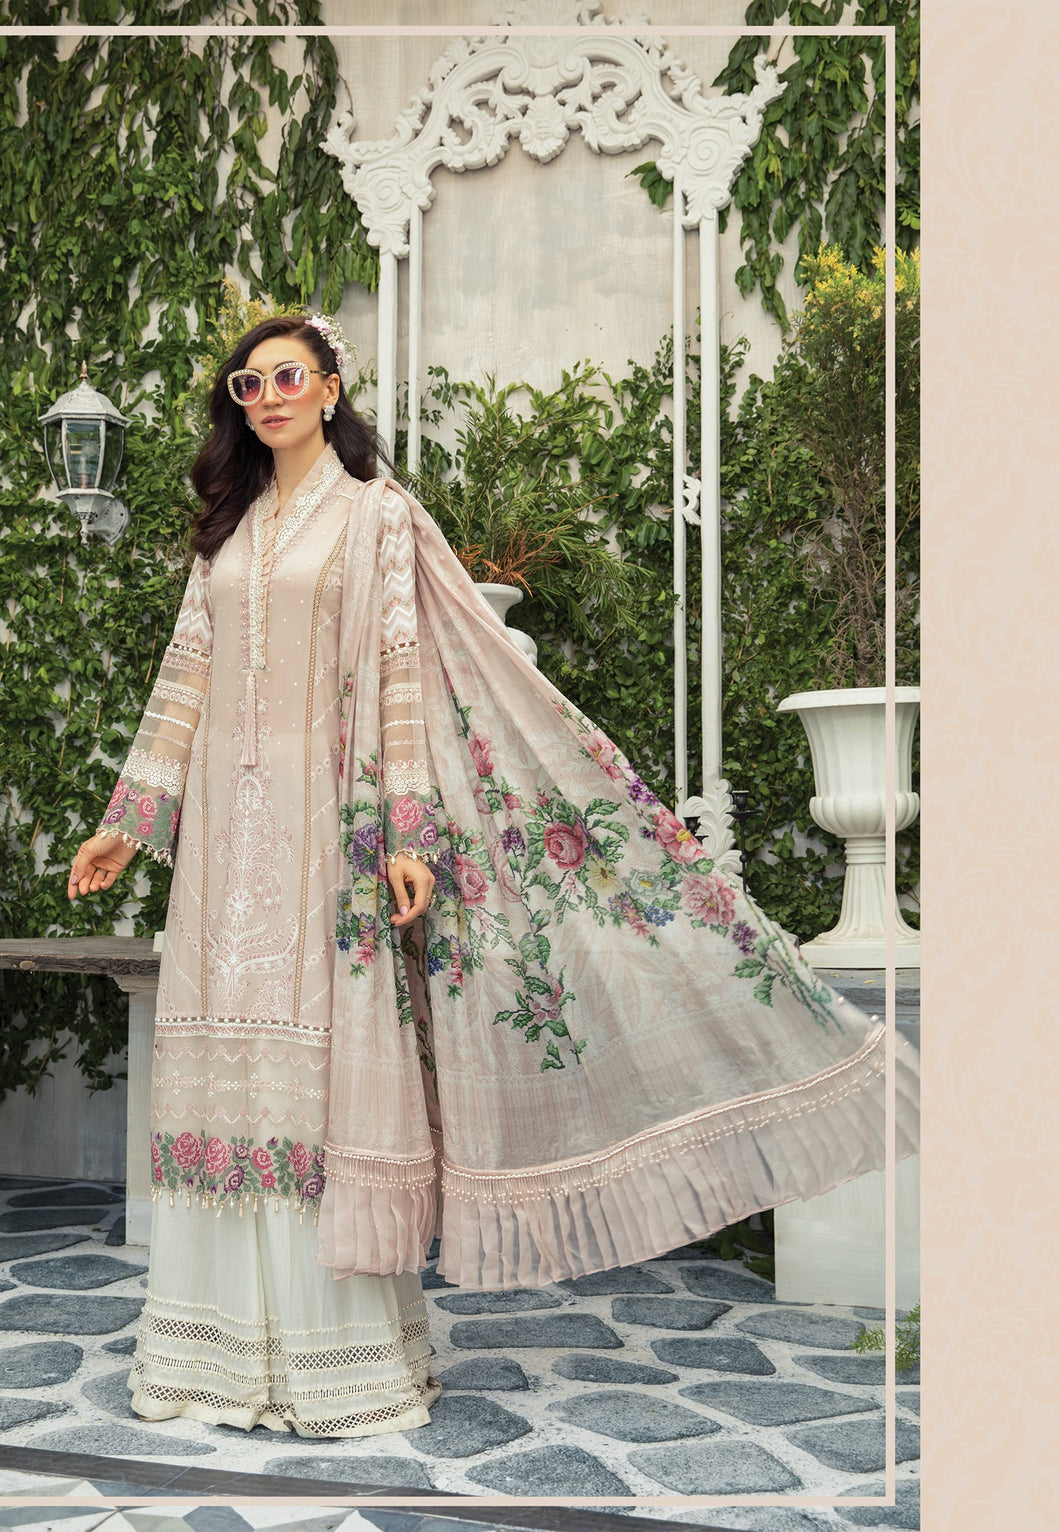 MARIA.B. Lawn Eid Collection 2020 - D10  maria b lawn eid collection 2020 maria b wedding maria b 2020 maria b maria b uk maria Bello maria b eid collection 2020 online Pakistani designer dress Anarkali Suits Party Werar Indian Dresses Pakistani Dresses Eid dresses online shoppingReady made Pakistani clothes UK Eid dresses UK online Eid dresses online shopping readymade eid suits uk eid suits 2019 uk pakistani eid suits uk eid suits 2020 uk Eid dresses 2020 UK maria b party wear maria b party wear 2020